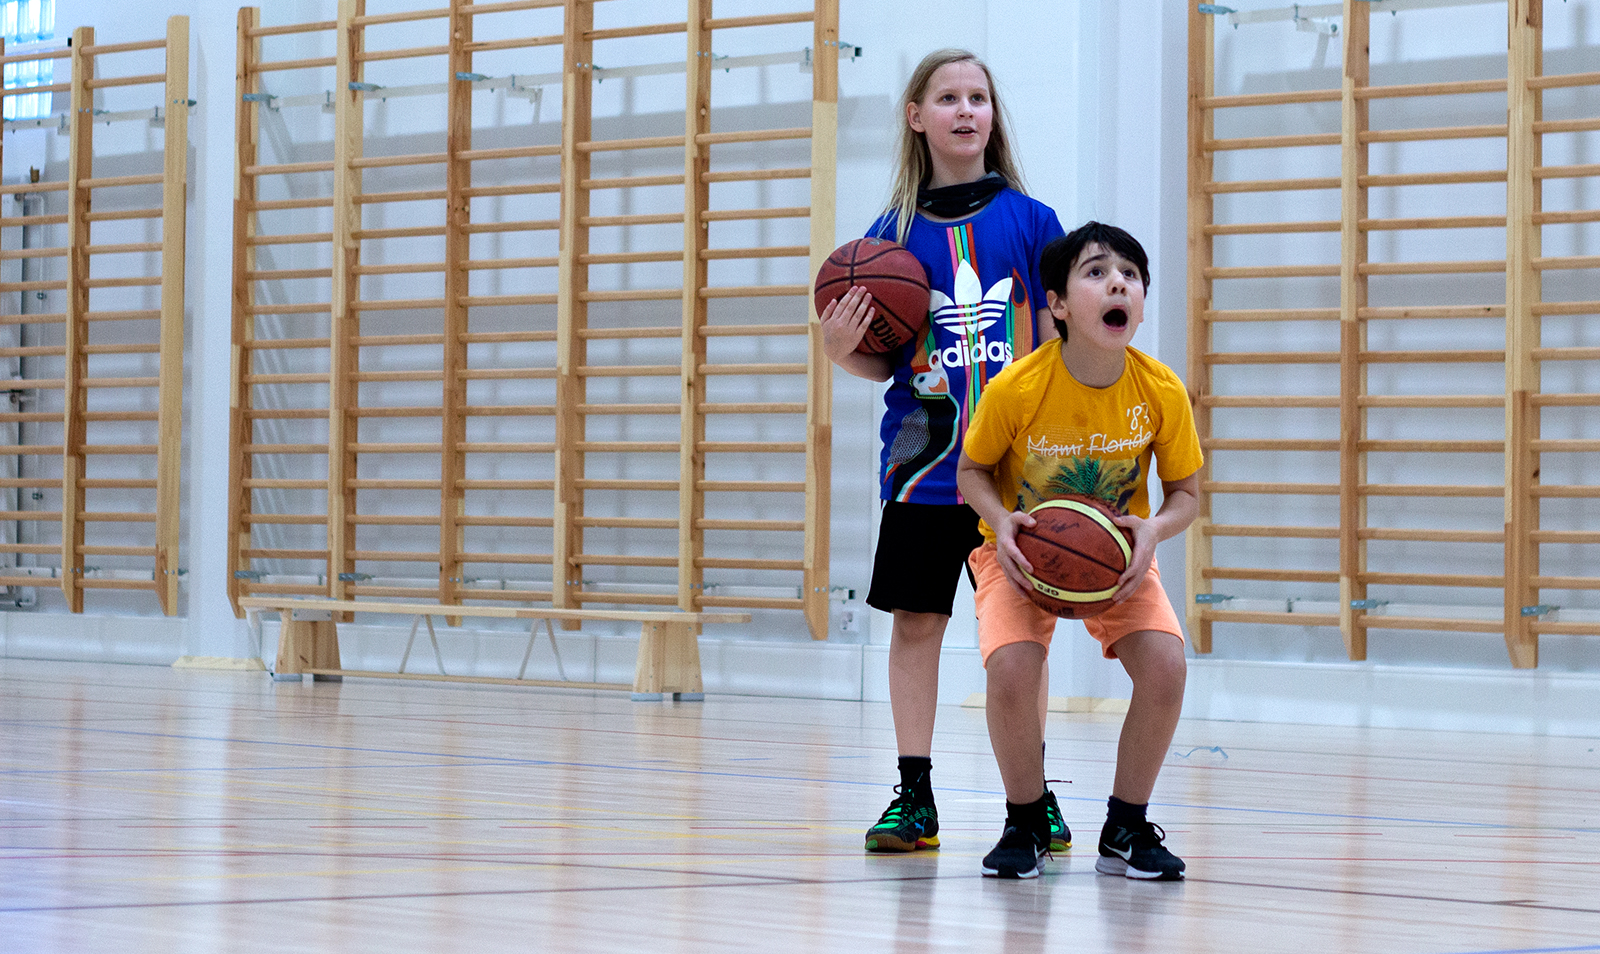 Playing Basketball with Alba Alppila